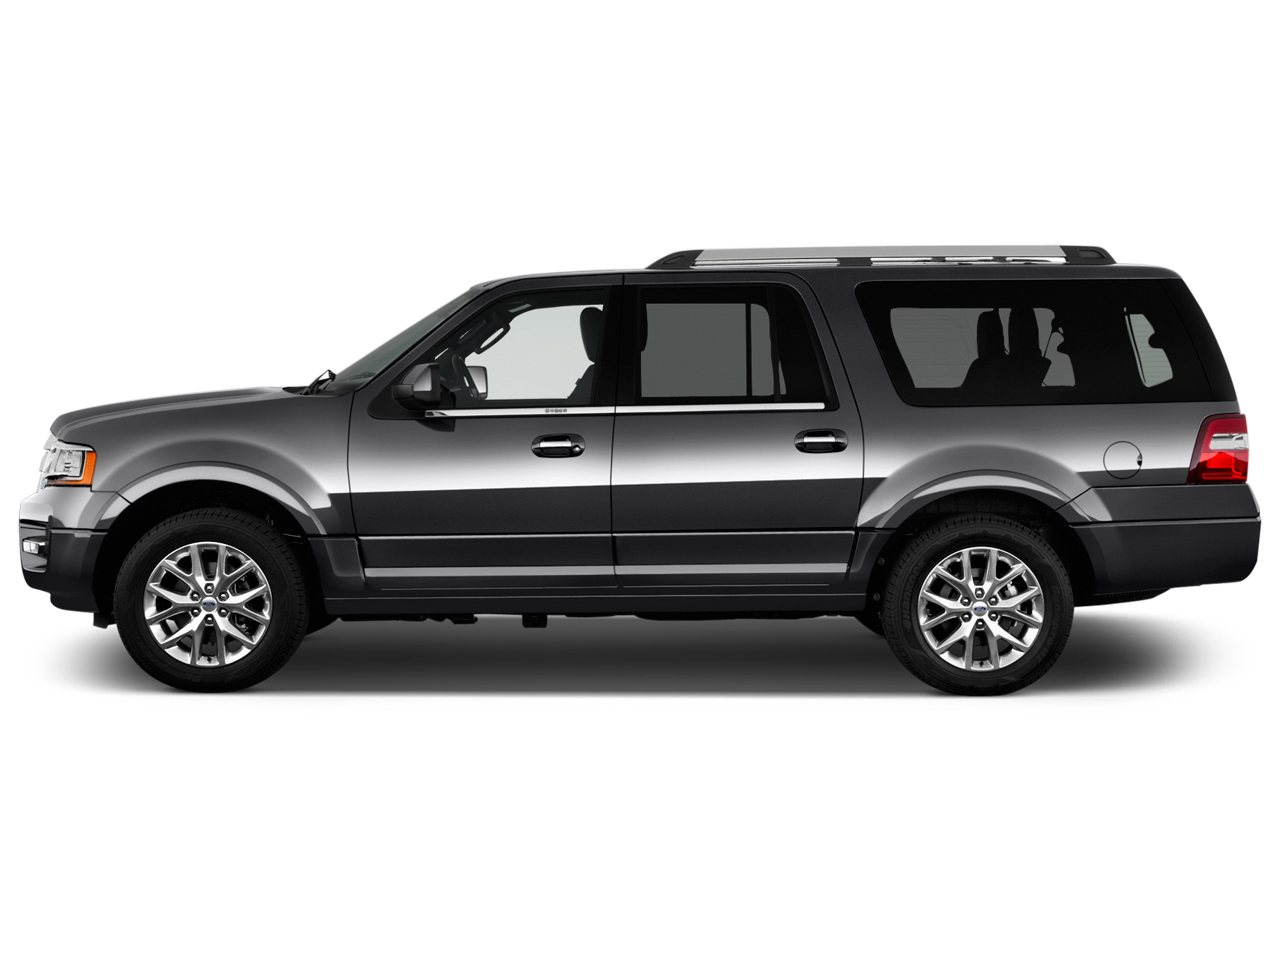 Ford Expedition El Review Ratings Specs Prices And Photos The Car Connection